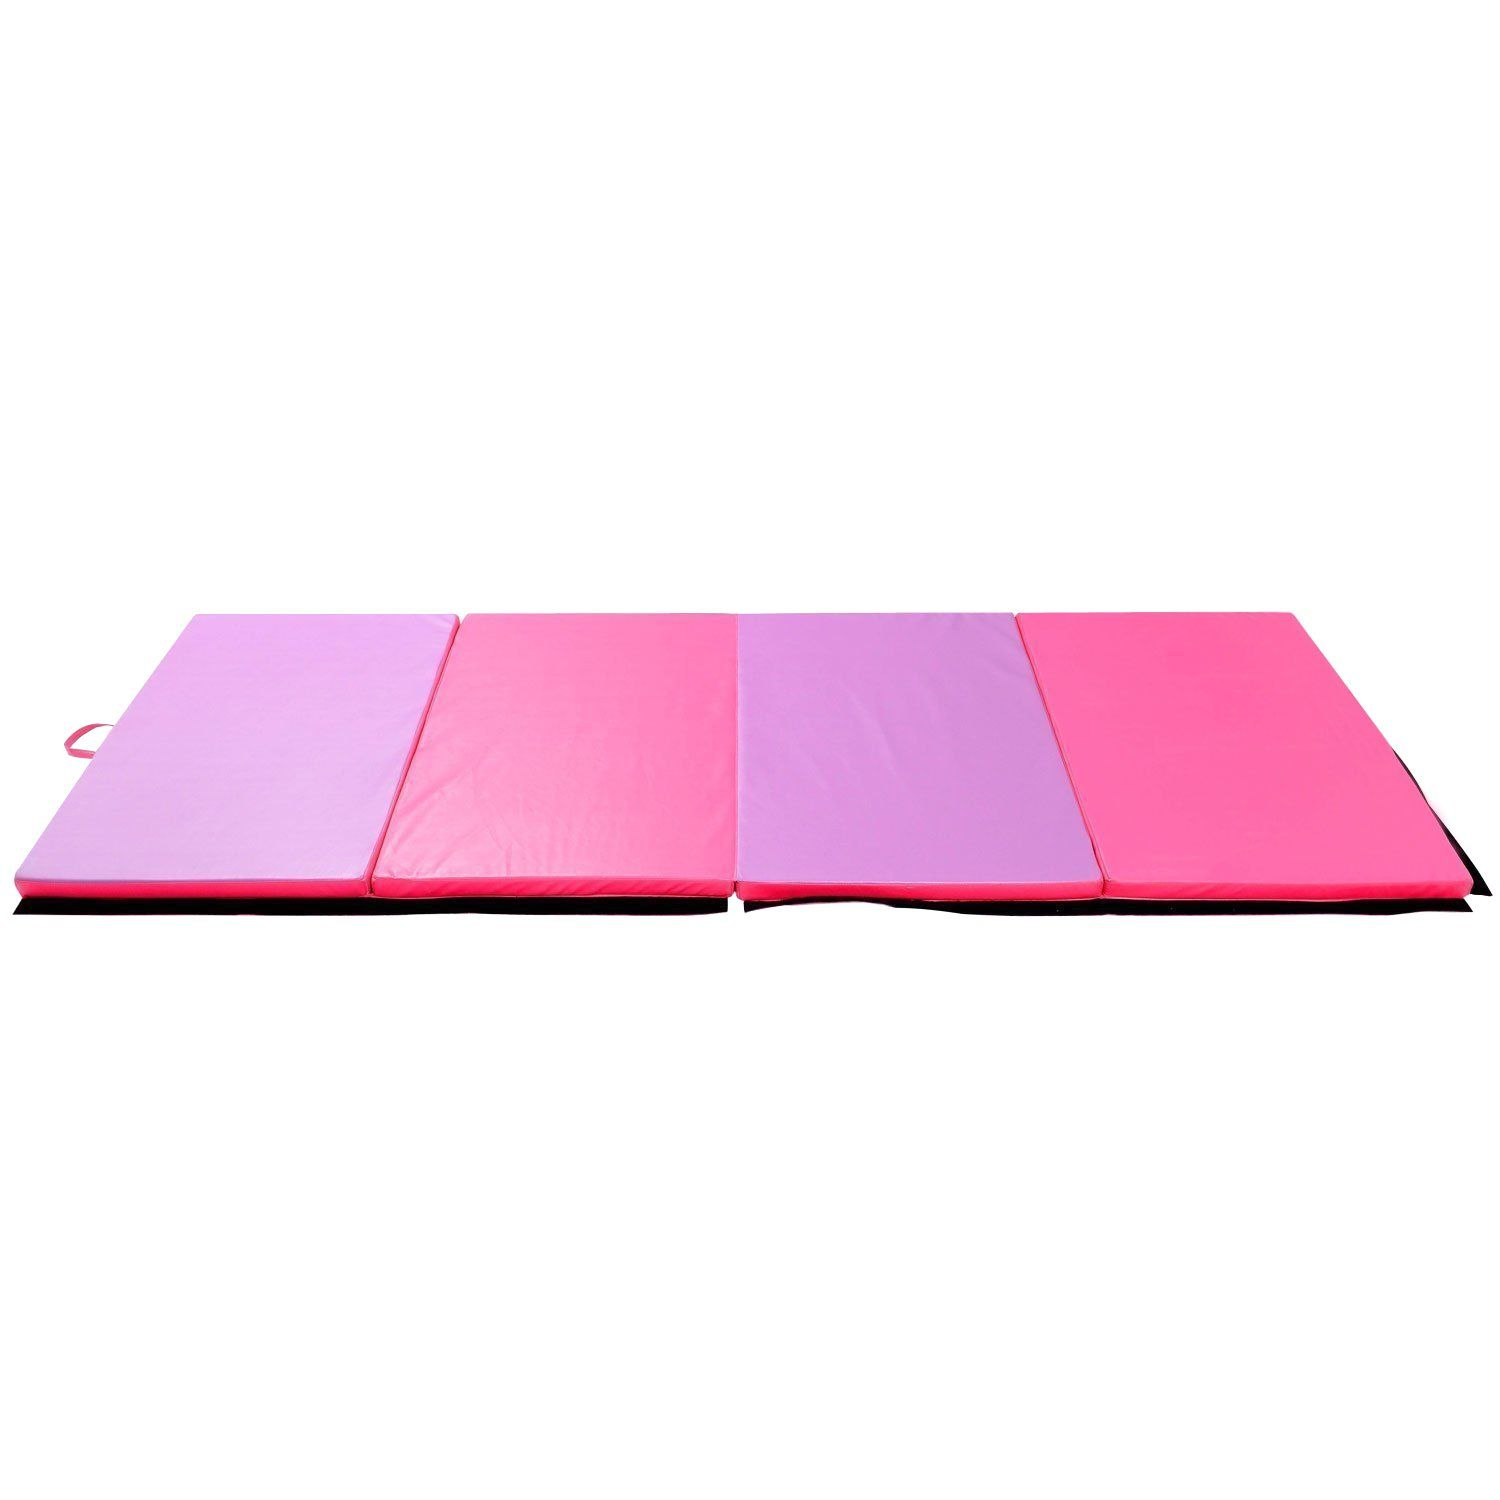 mat air itm track mats uk floor inflatable gymnastics tumbling diy home ebay gym